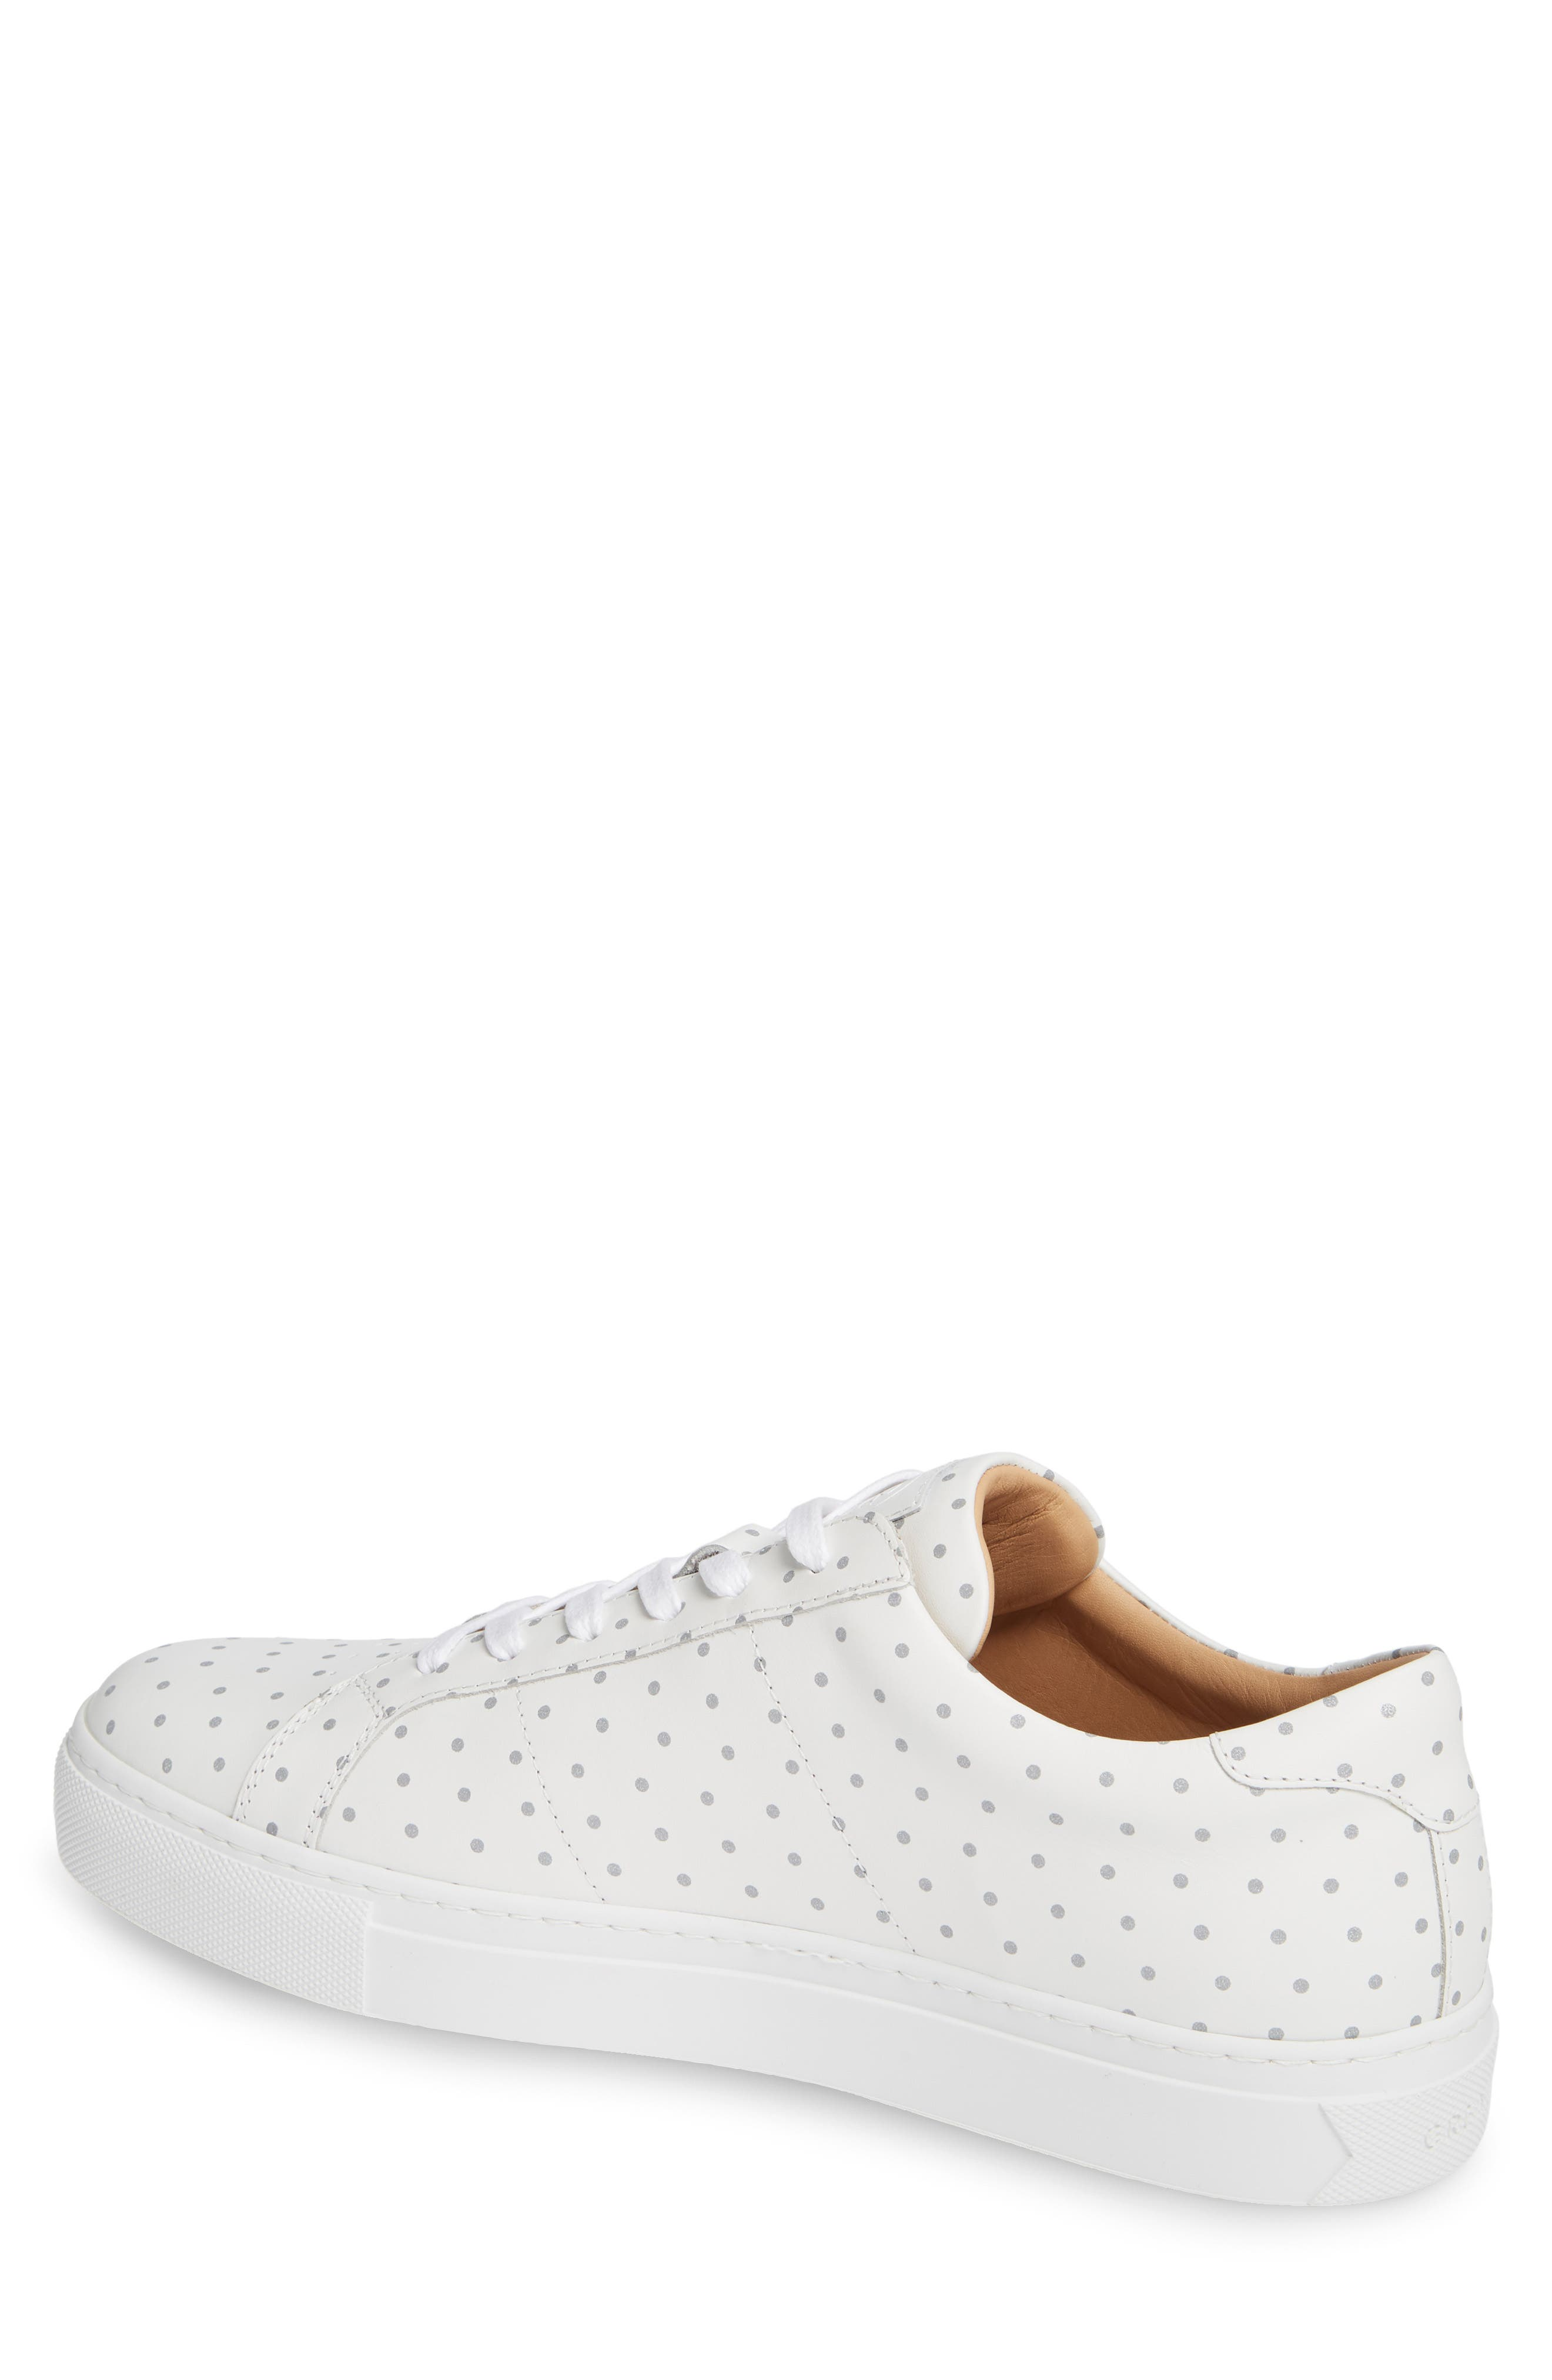 Nick Wooster x GREATS Royale Dots Low Top Sneaker,                             Alternate thumbnail 2, color,                             WHITE W/ 3M DOTS